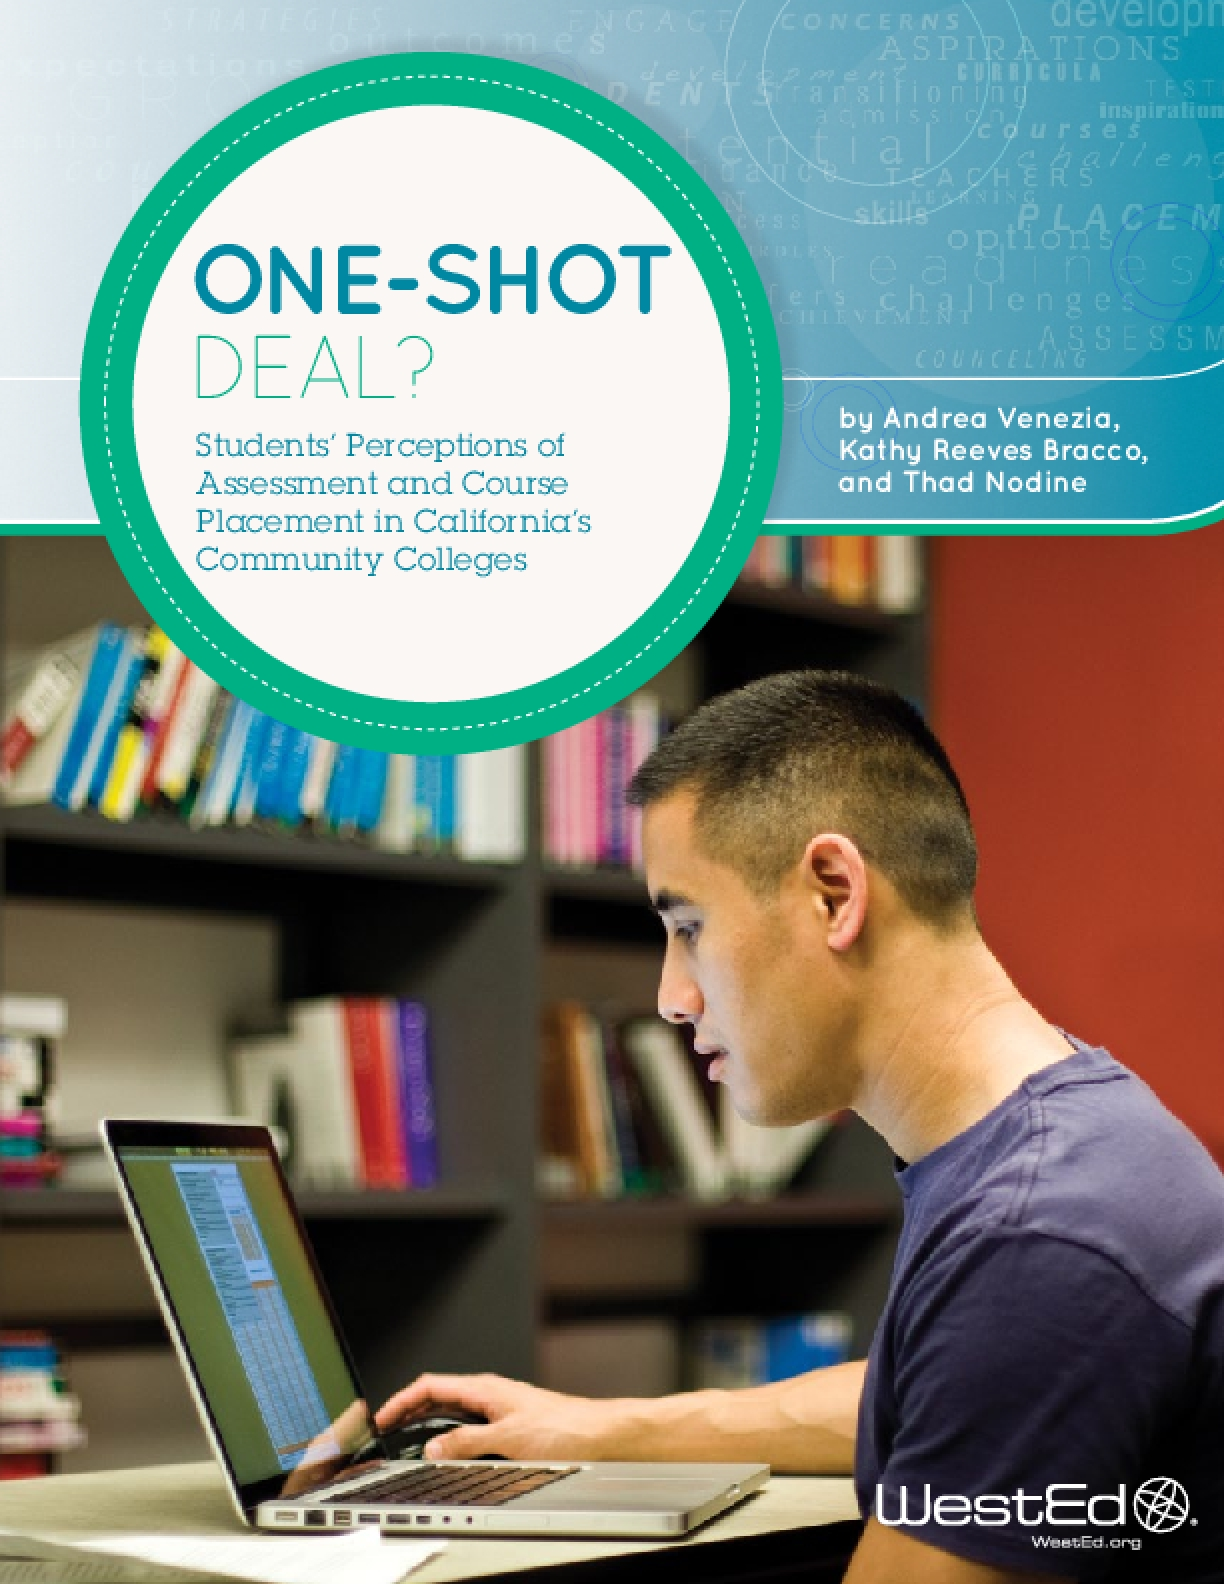 One-Shot Deal? Students' Perceptions of Assessment and Course Placement in California's Community Colleges